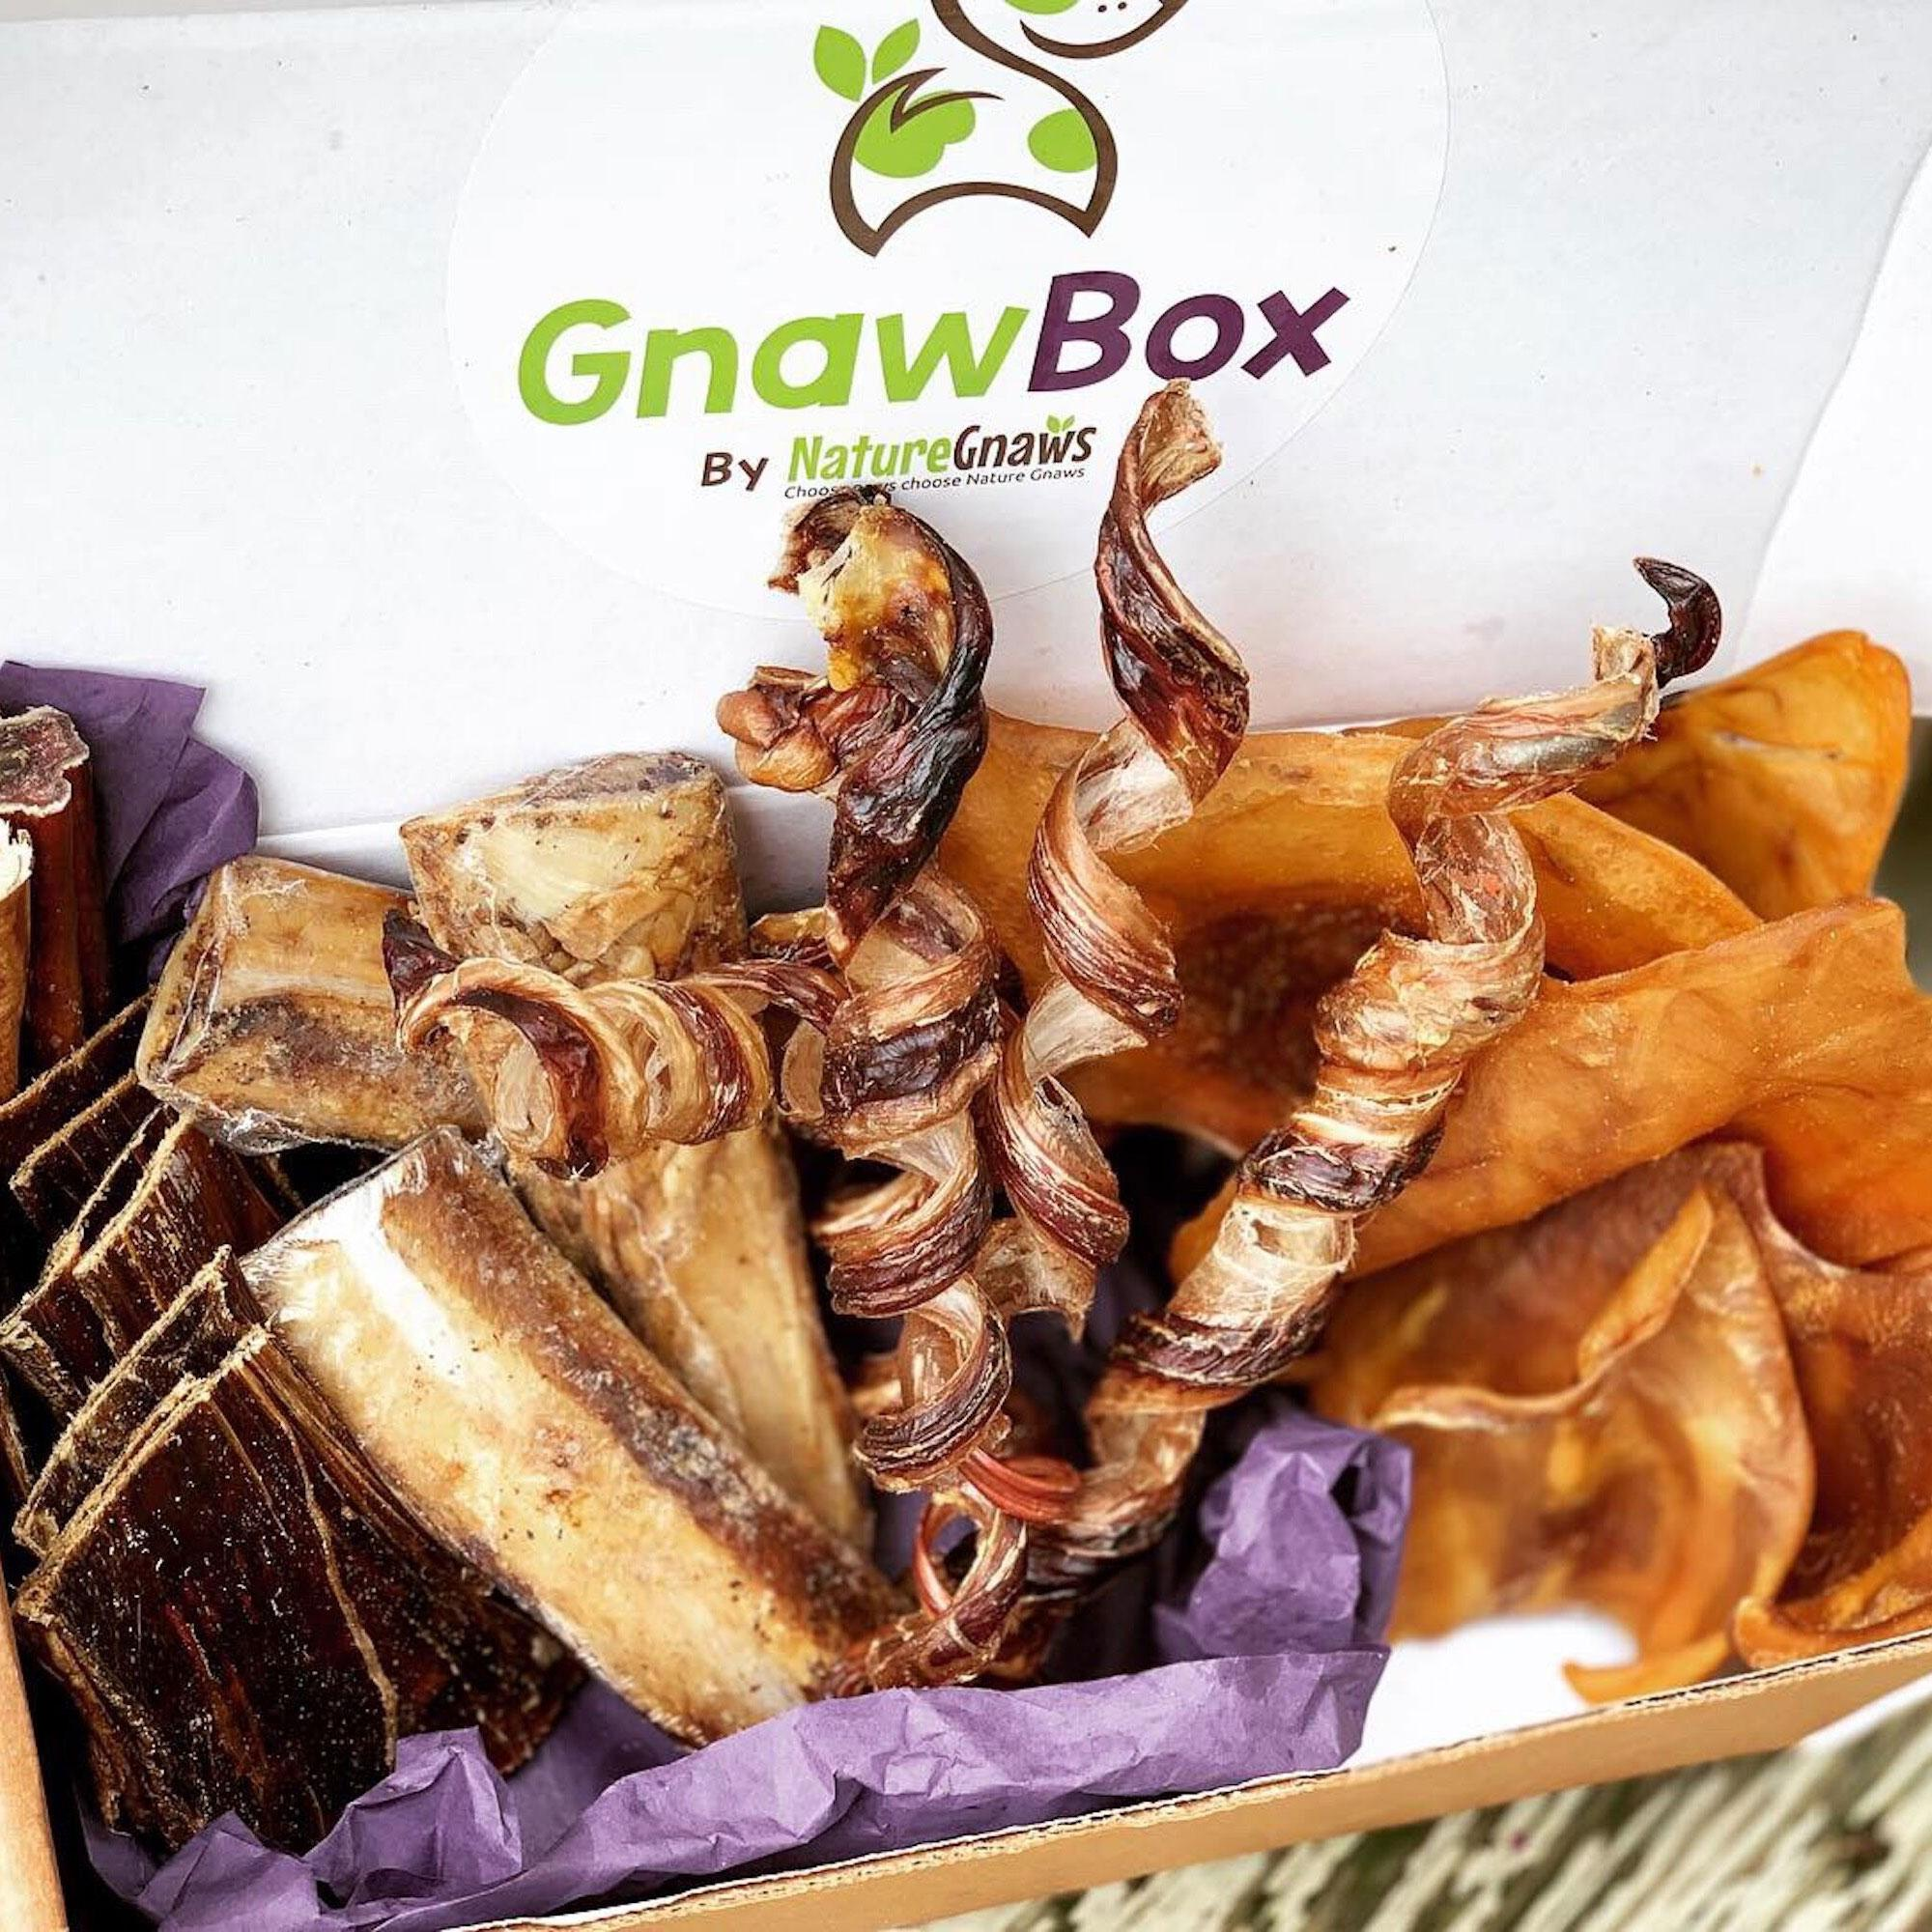 Gnaw Box - Nature Gnaws 100% Natural Dog Chew Subscription Box: Large & Medium Dog Breeds